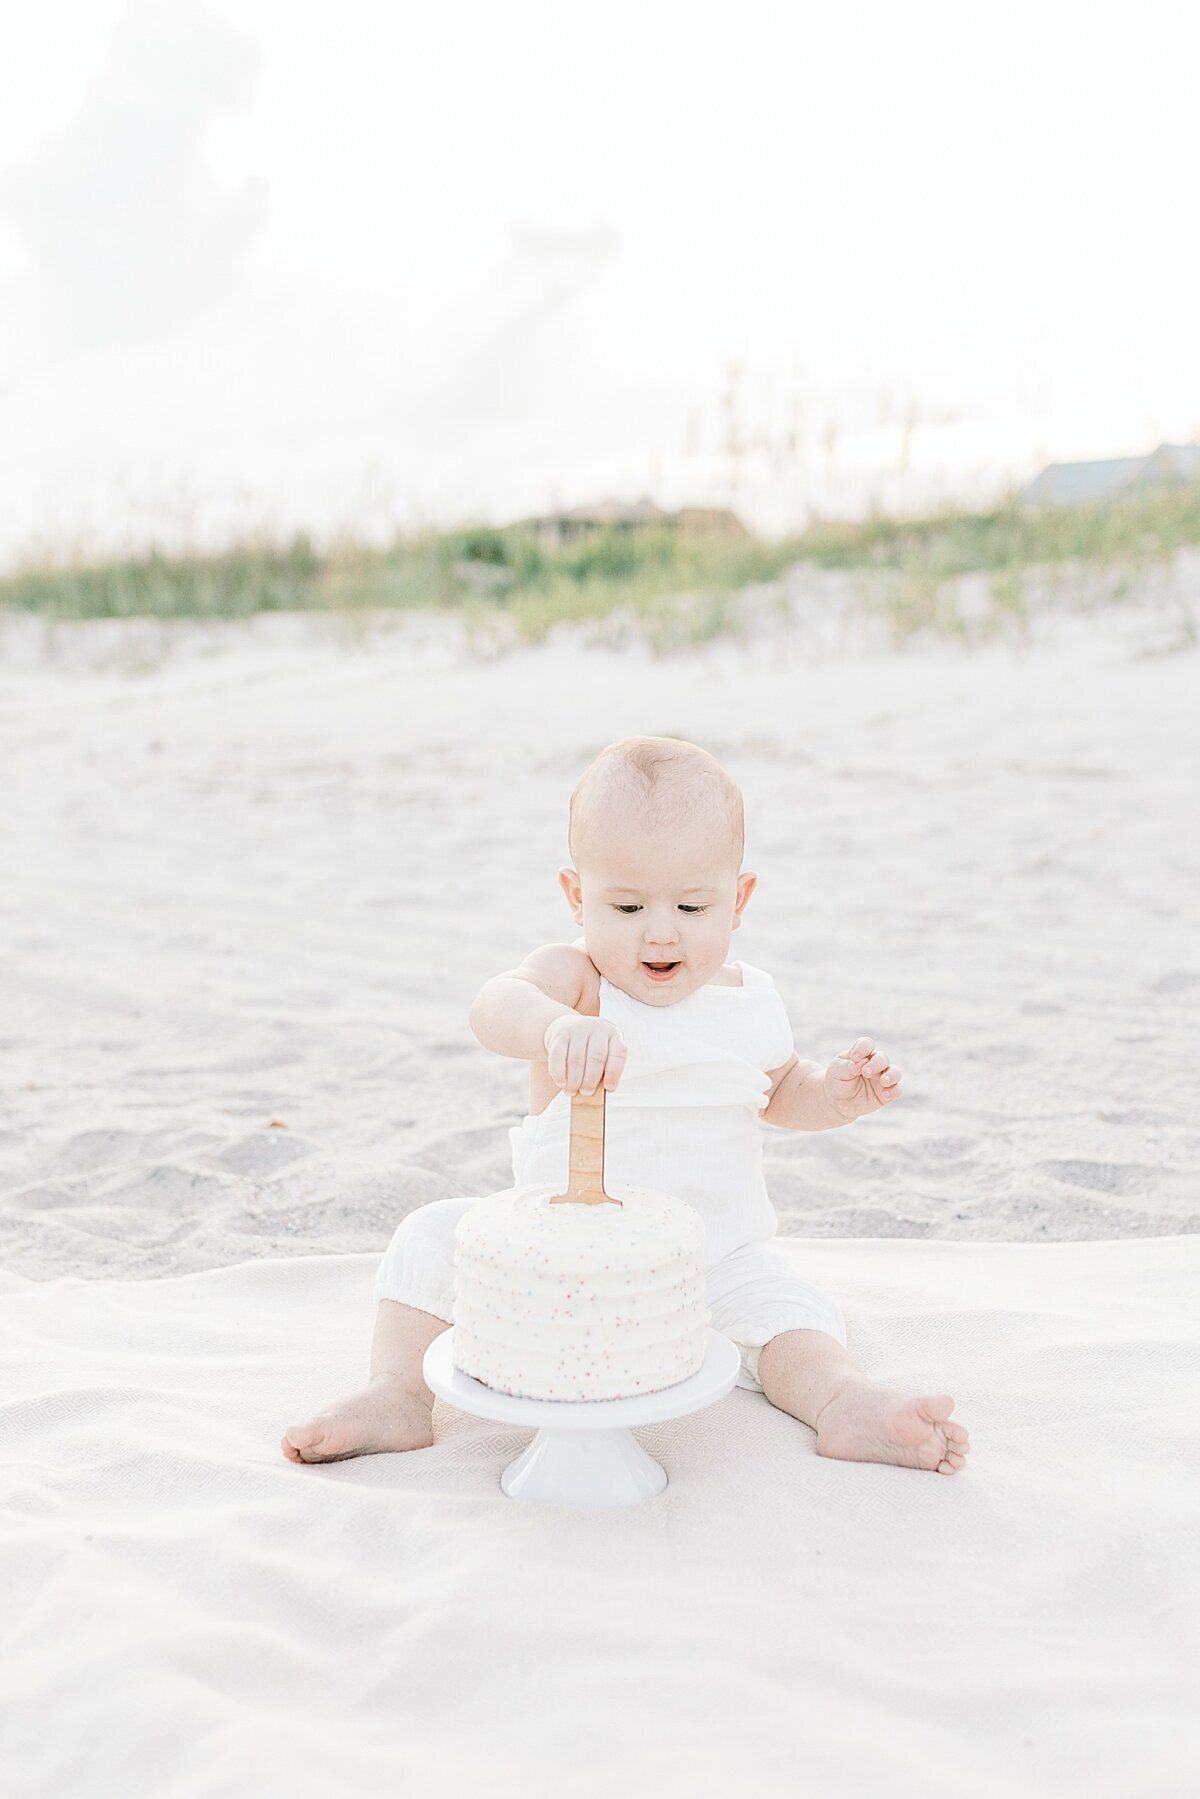 First-birthday-photoshoot-Isle-of-Palms-caitlyn-motycka-photography_0018